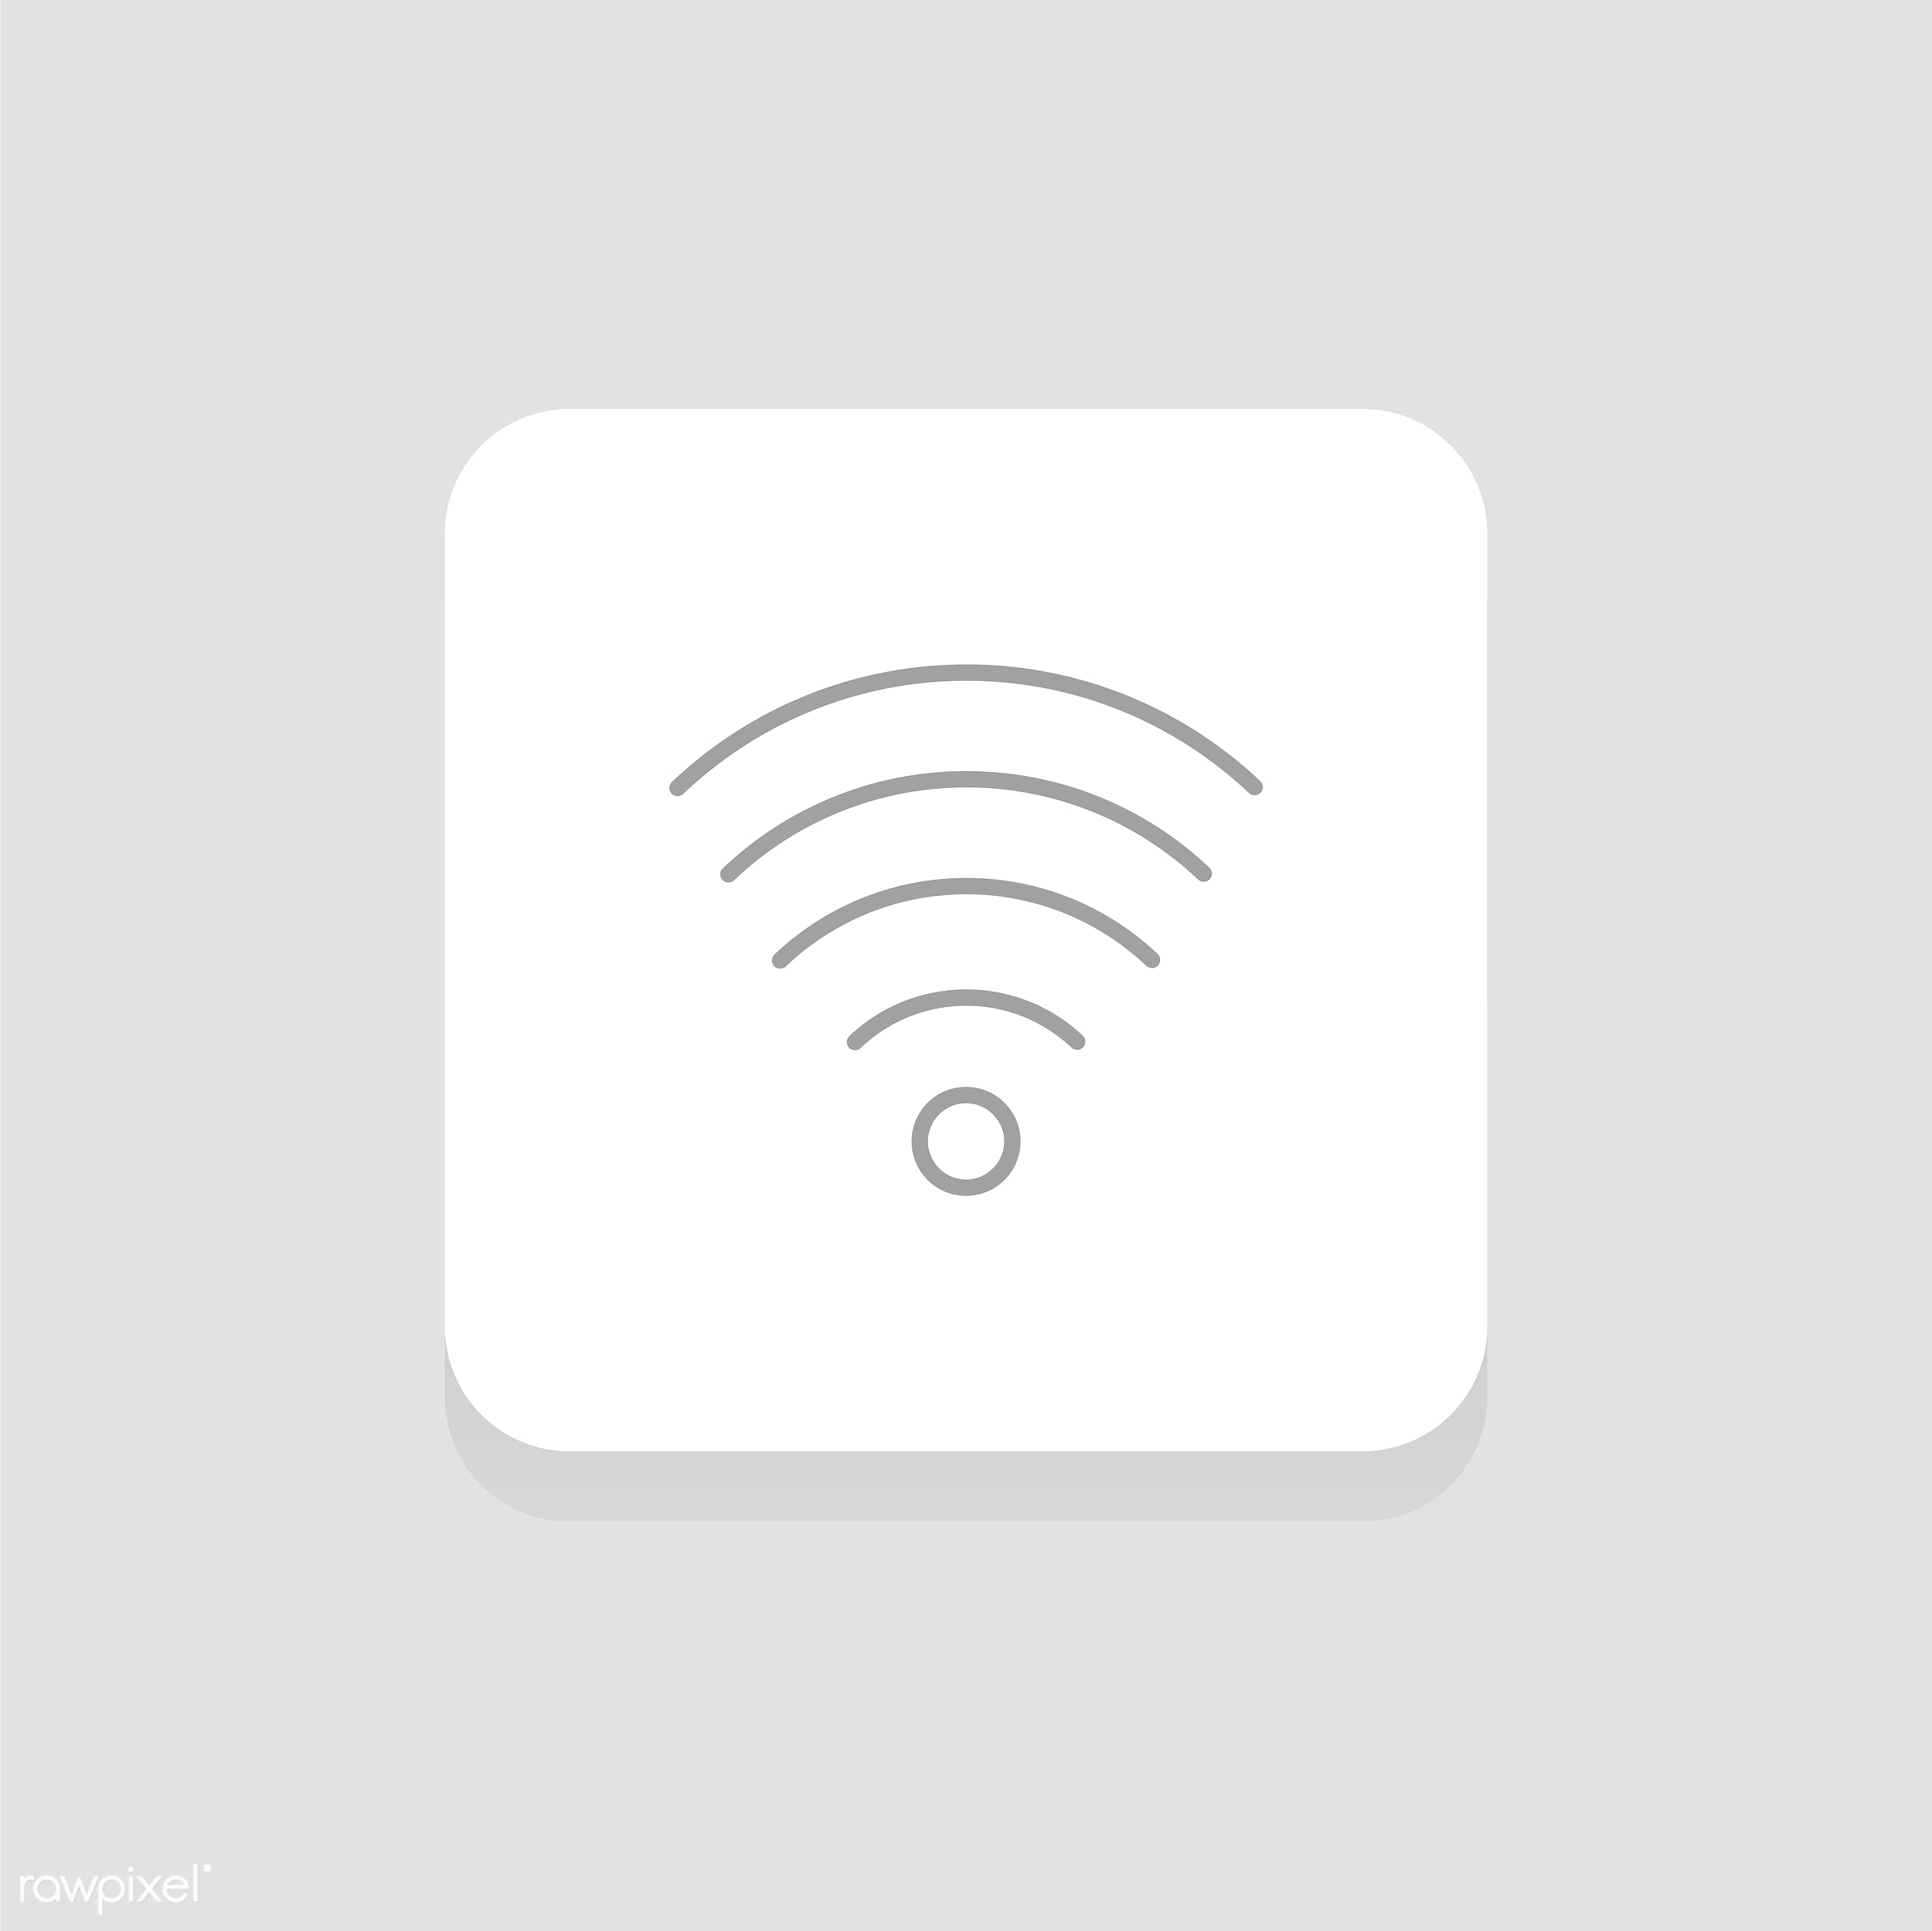 Vector of wifi icon - wifi, design, flat, graphic, icon, illustration, isolated, layout, style, symbol, vector, web, website...